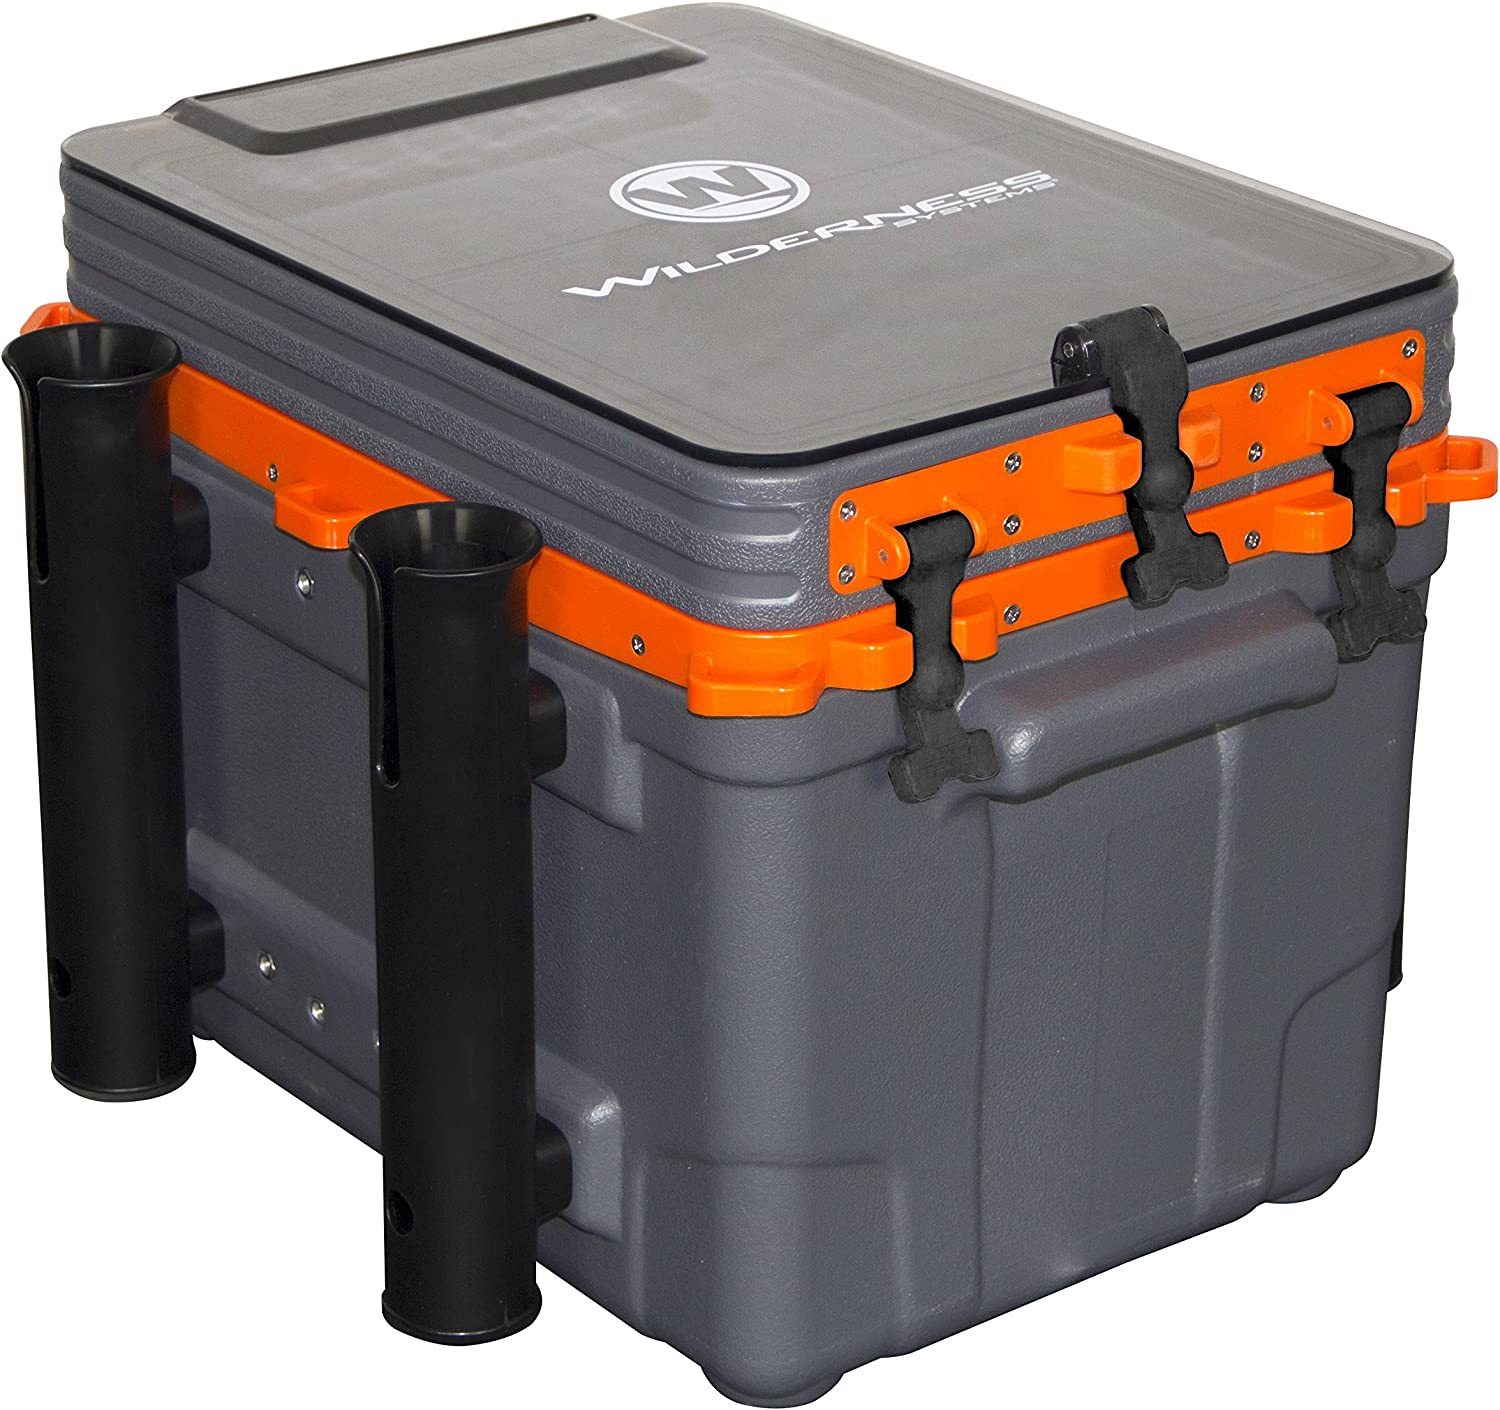 One Color Wilderness Systems Unisexs Kayak Storage Crate for Fishing Size